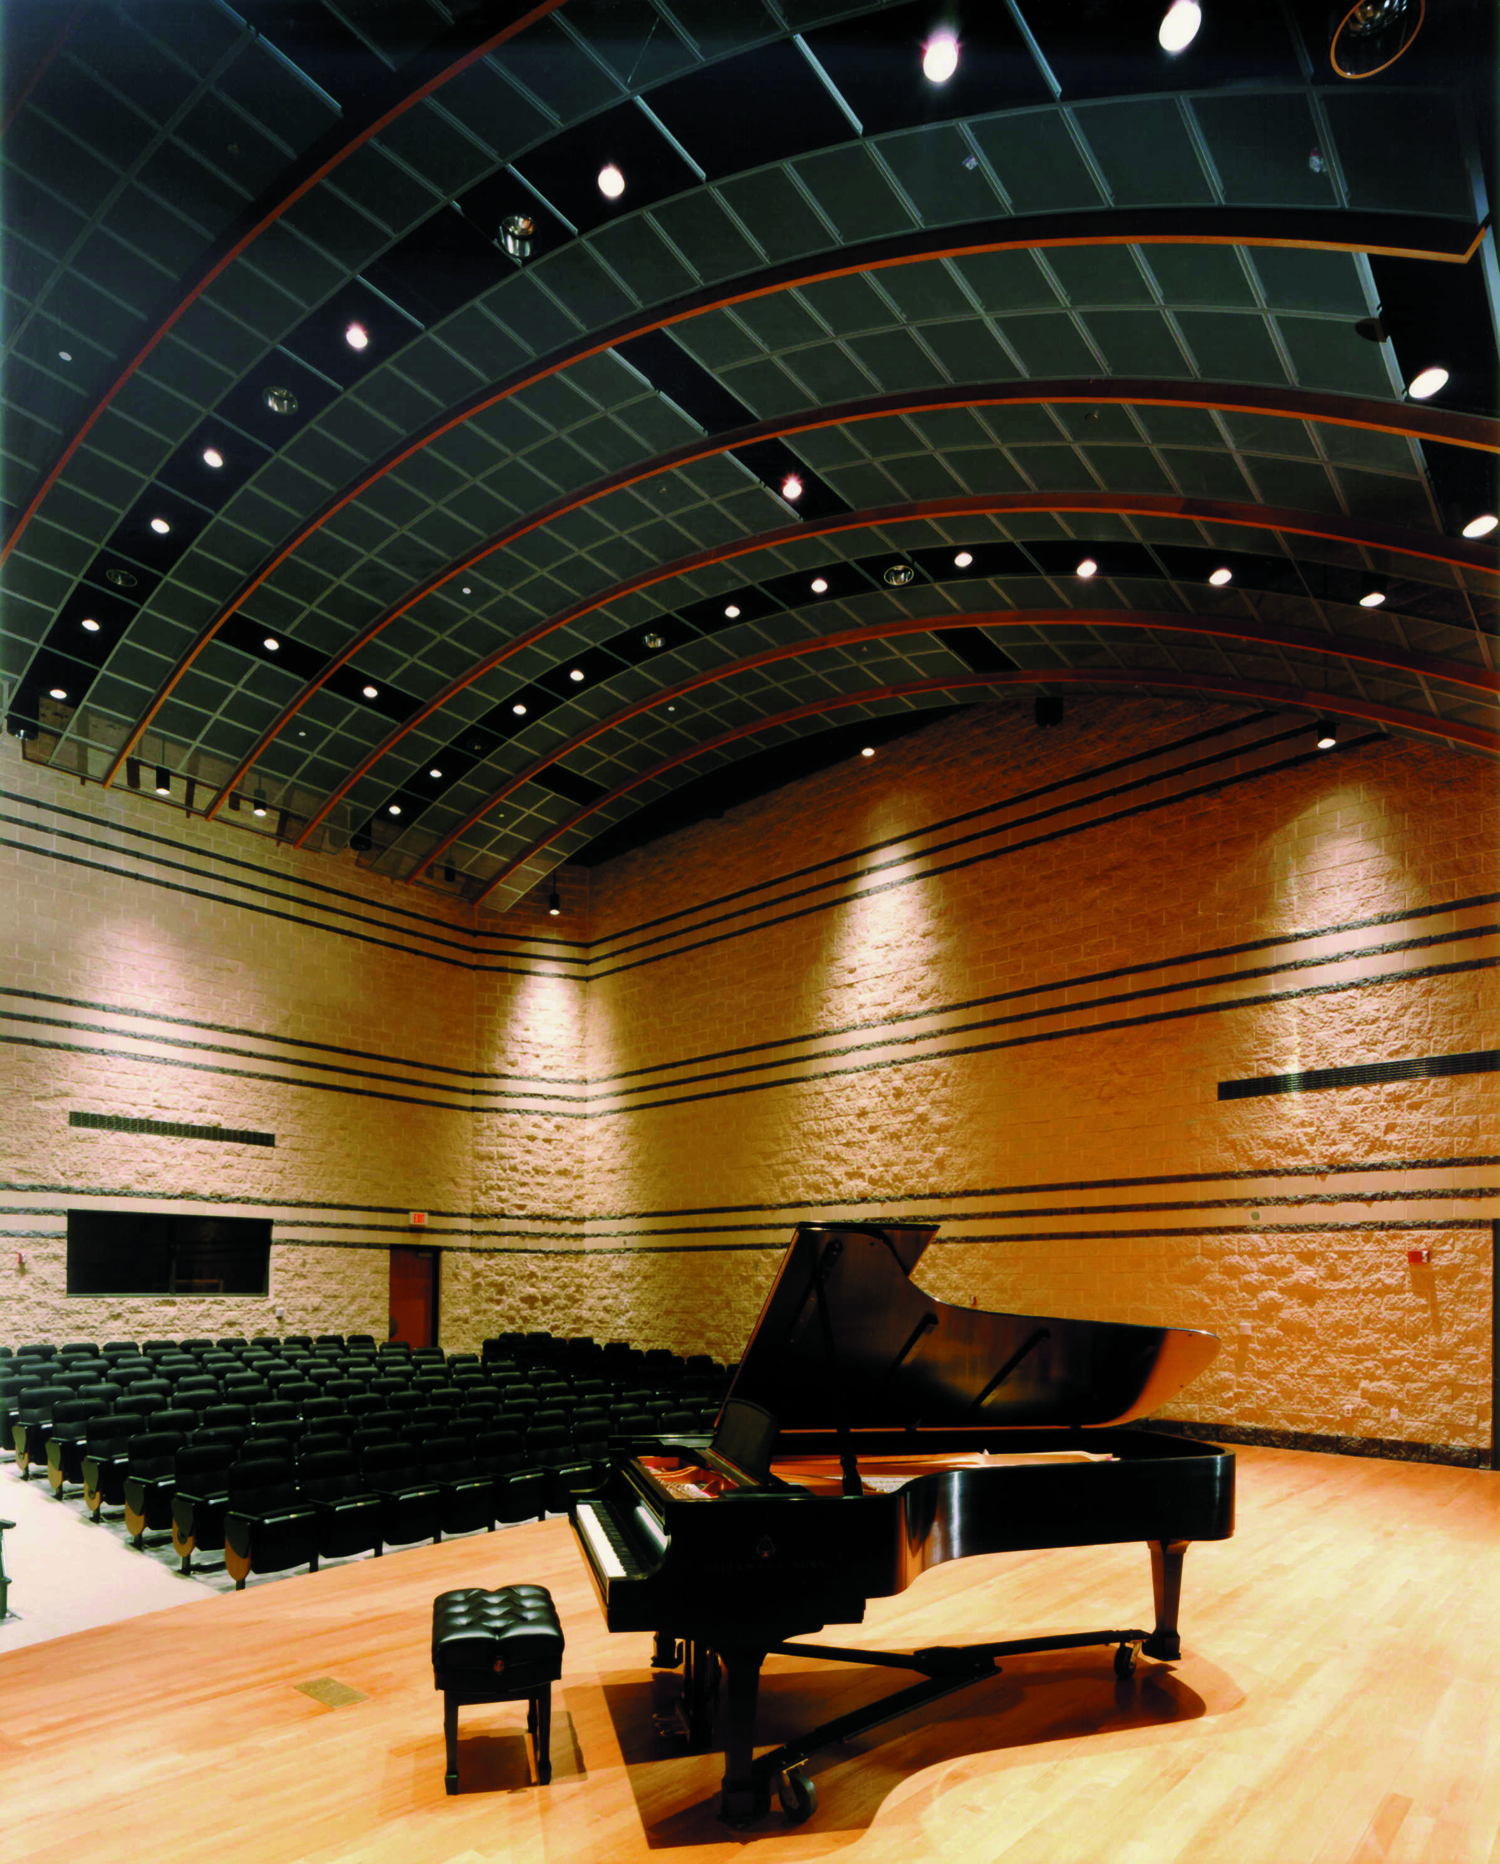 Recital Hall with piano on stage